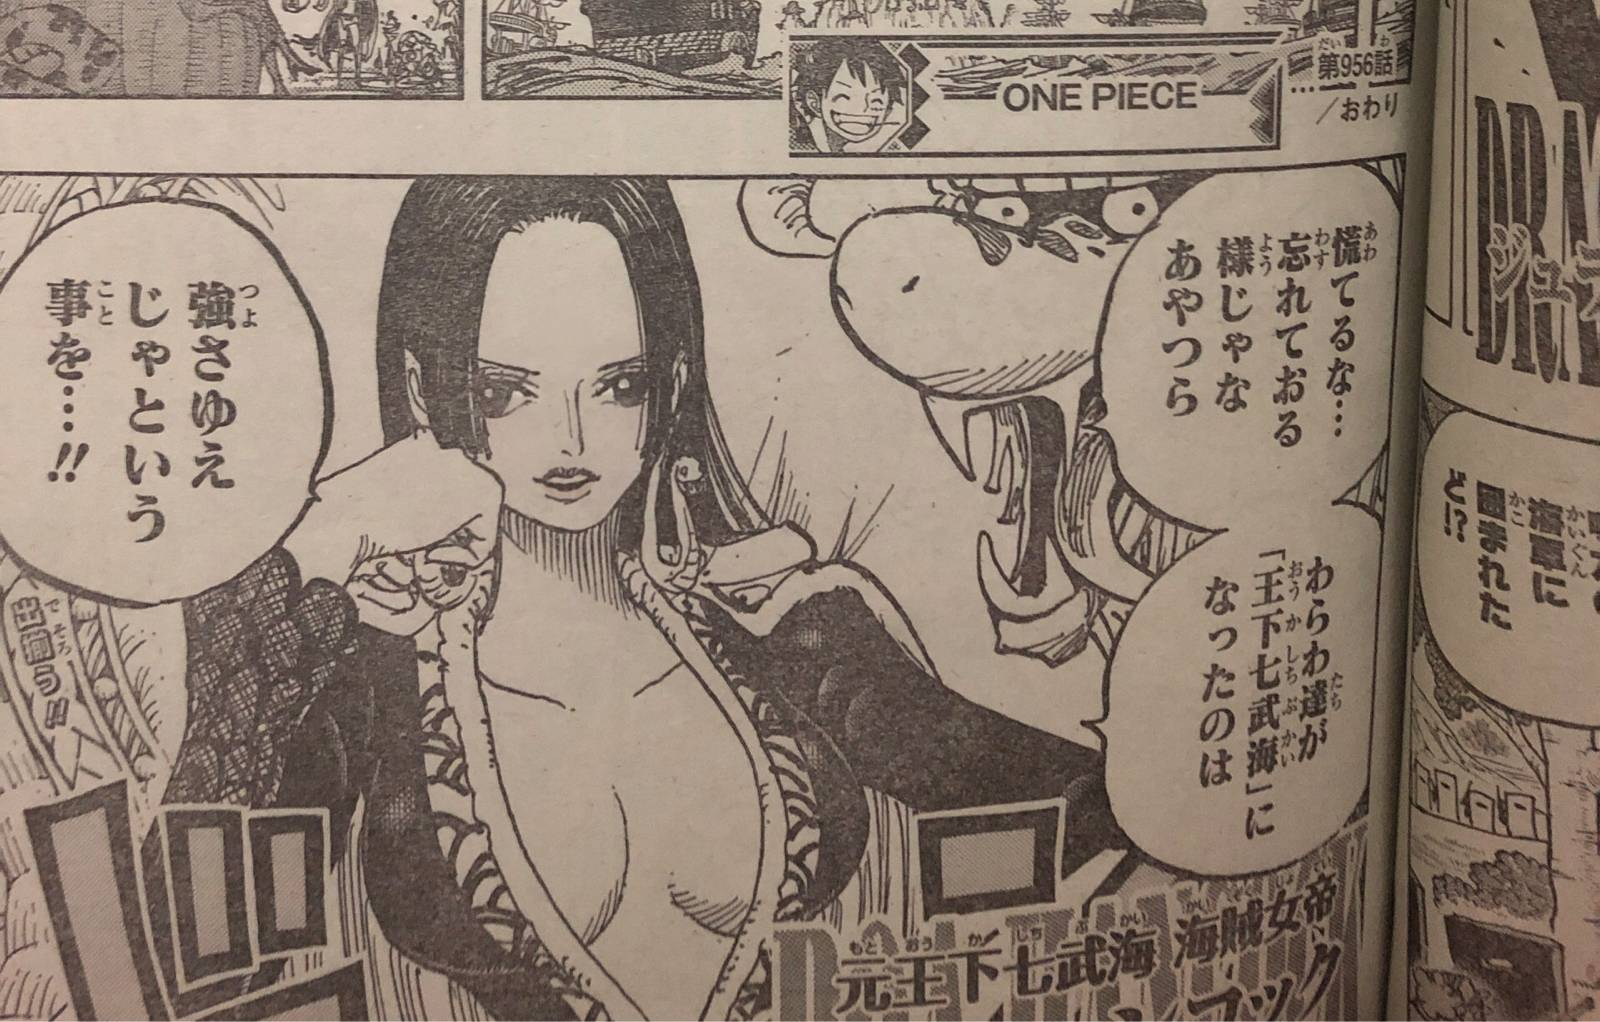 One Piece Spoilers 956 MFCMAH5y_o